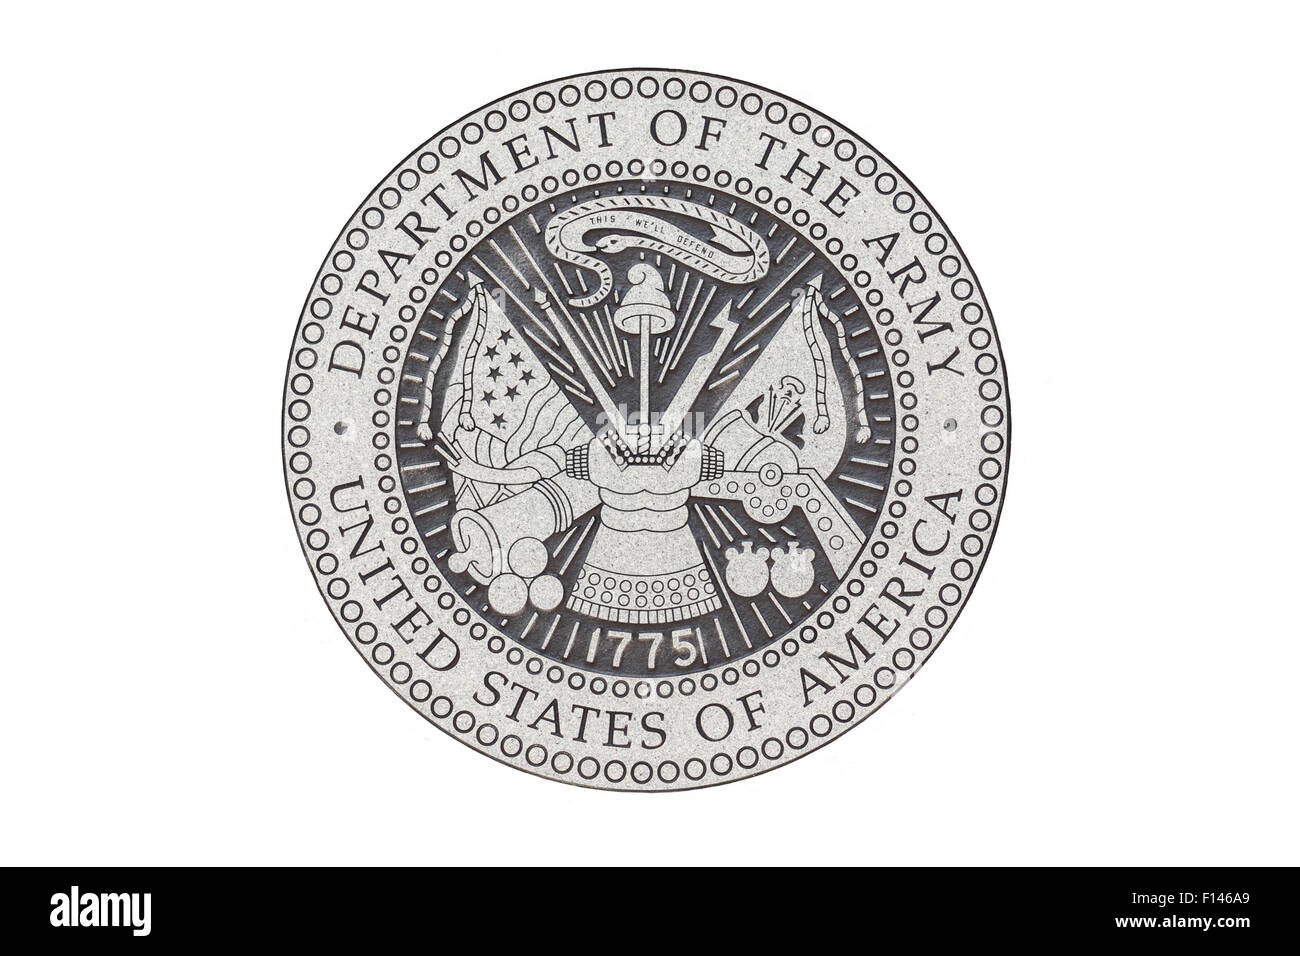 U.S. Army official seal on a white background. Stock Photo